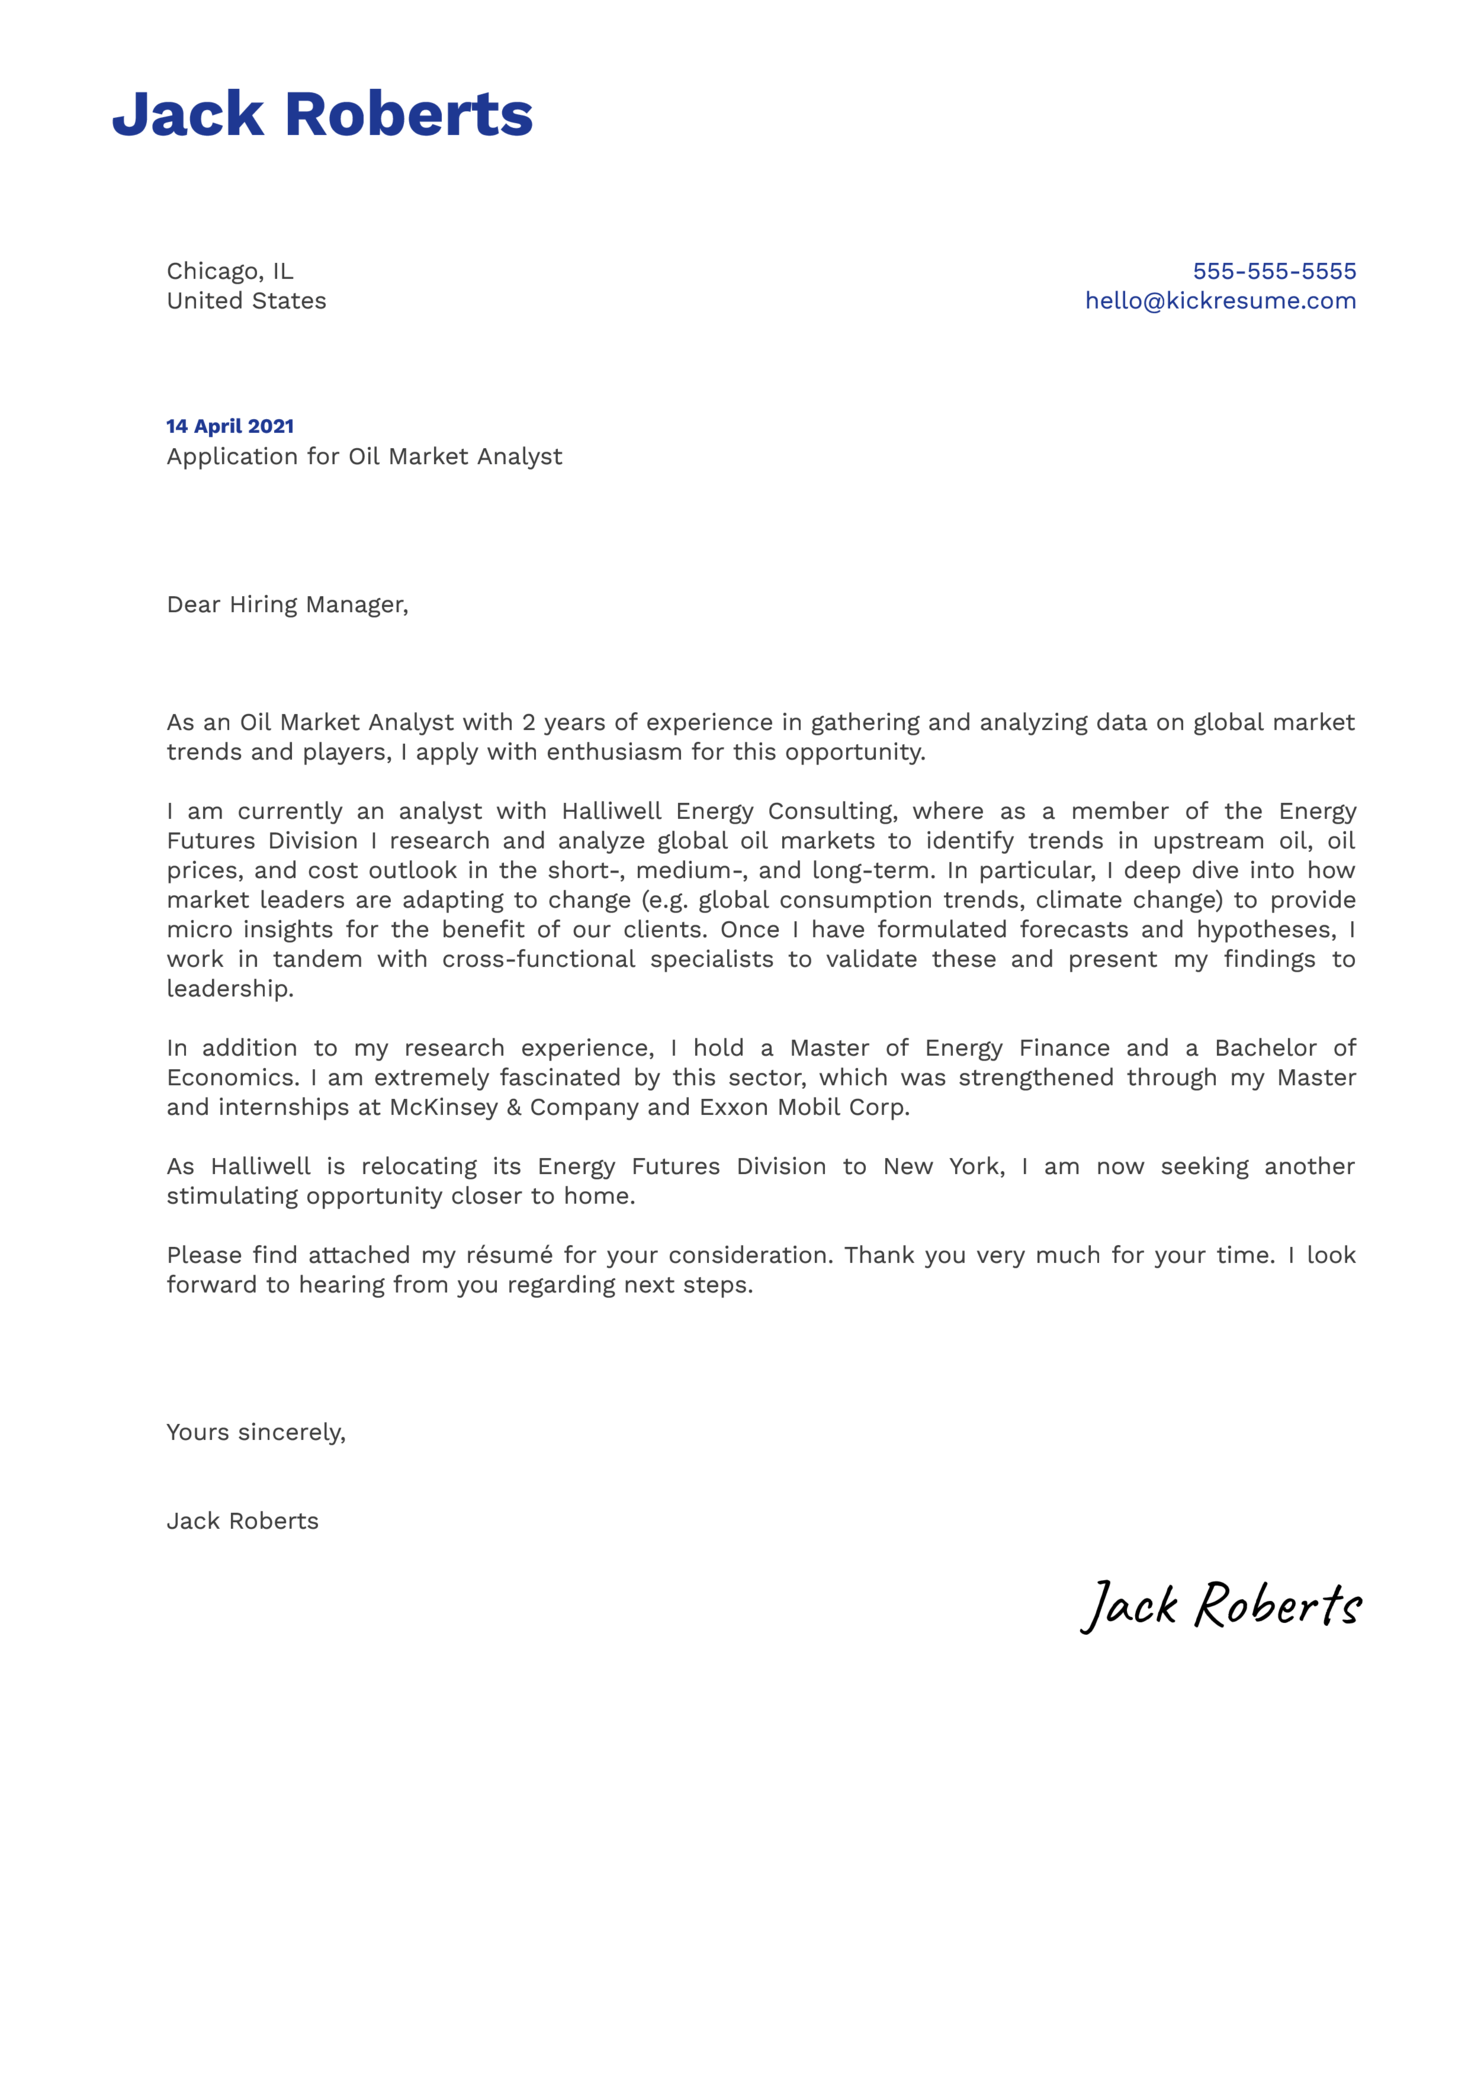 Oil Market Analyst Cover Letter Example